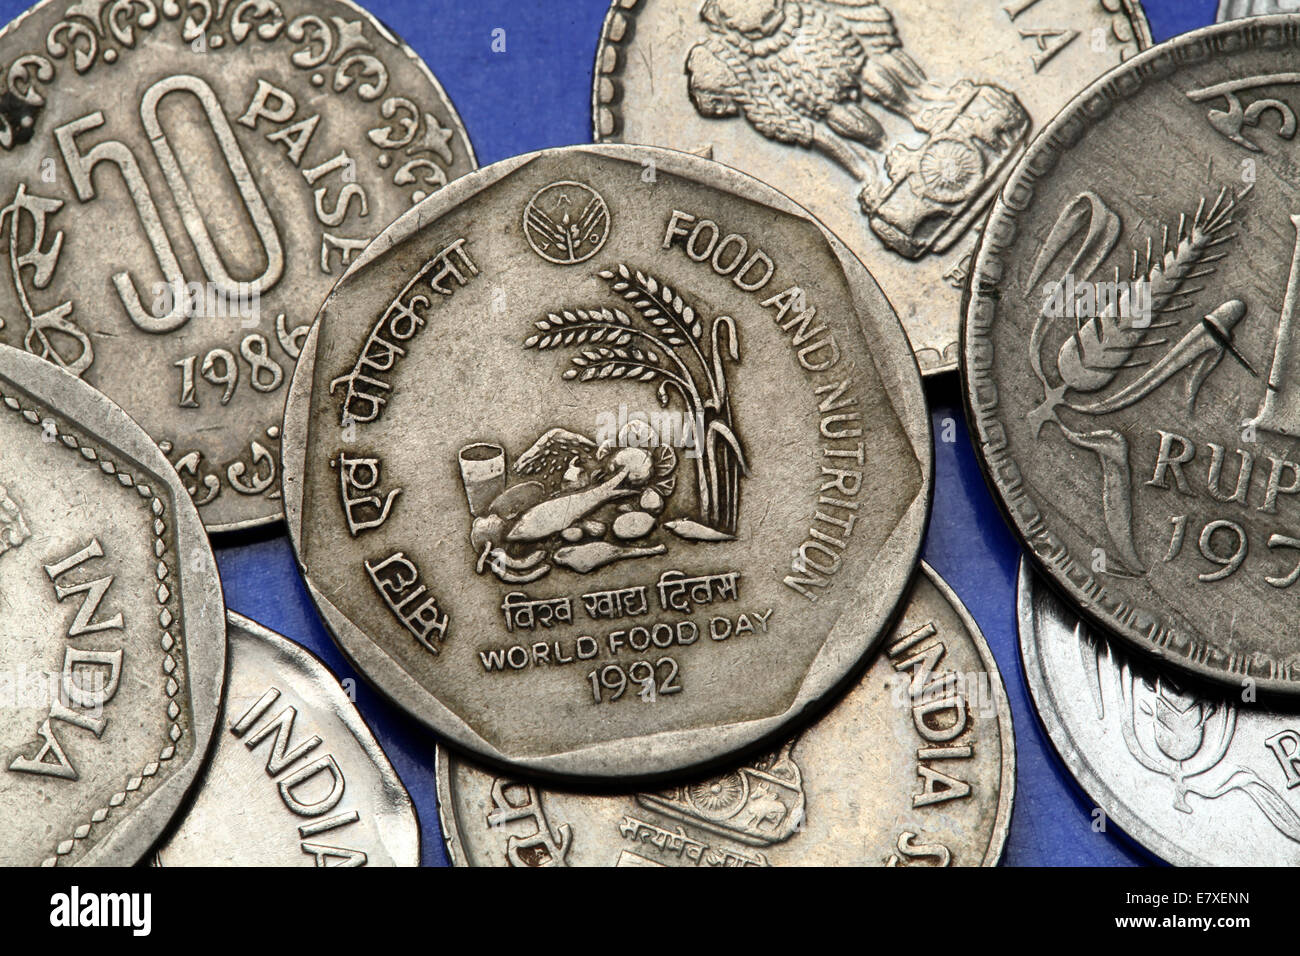 Coins of India. Indian one rupee coin from 1992 dedicated to World Food Day. - Stock Image